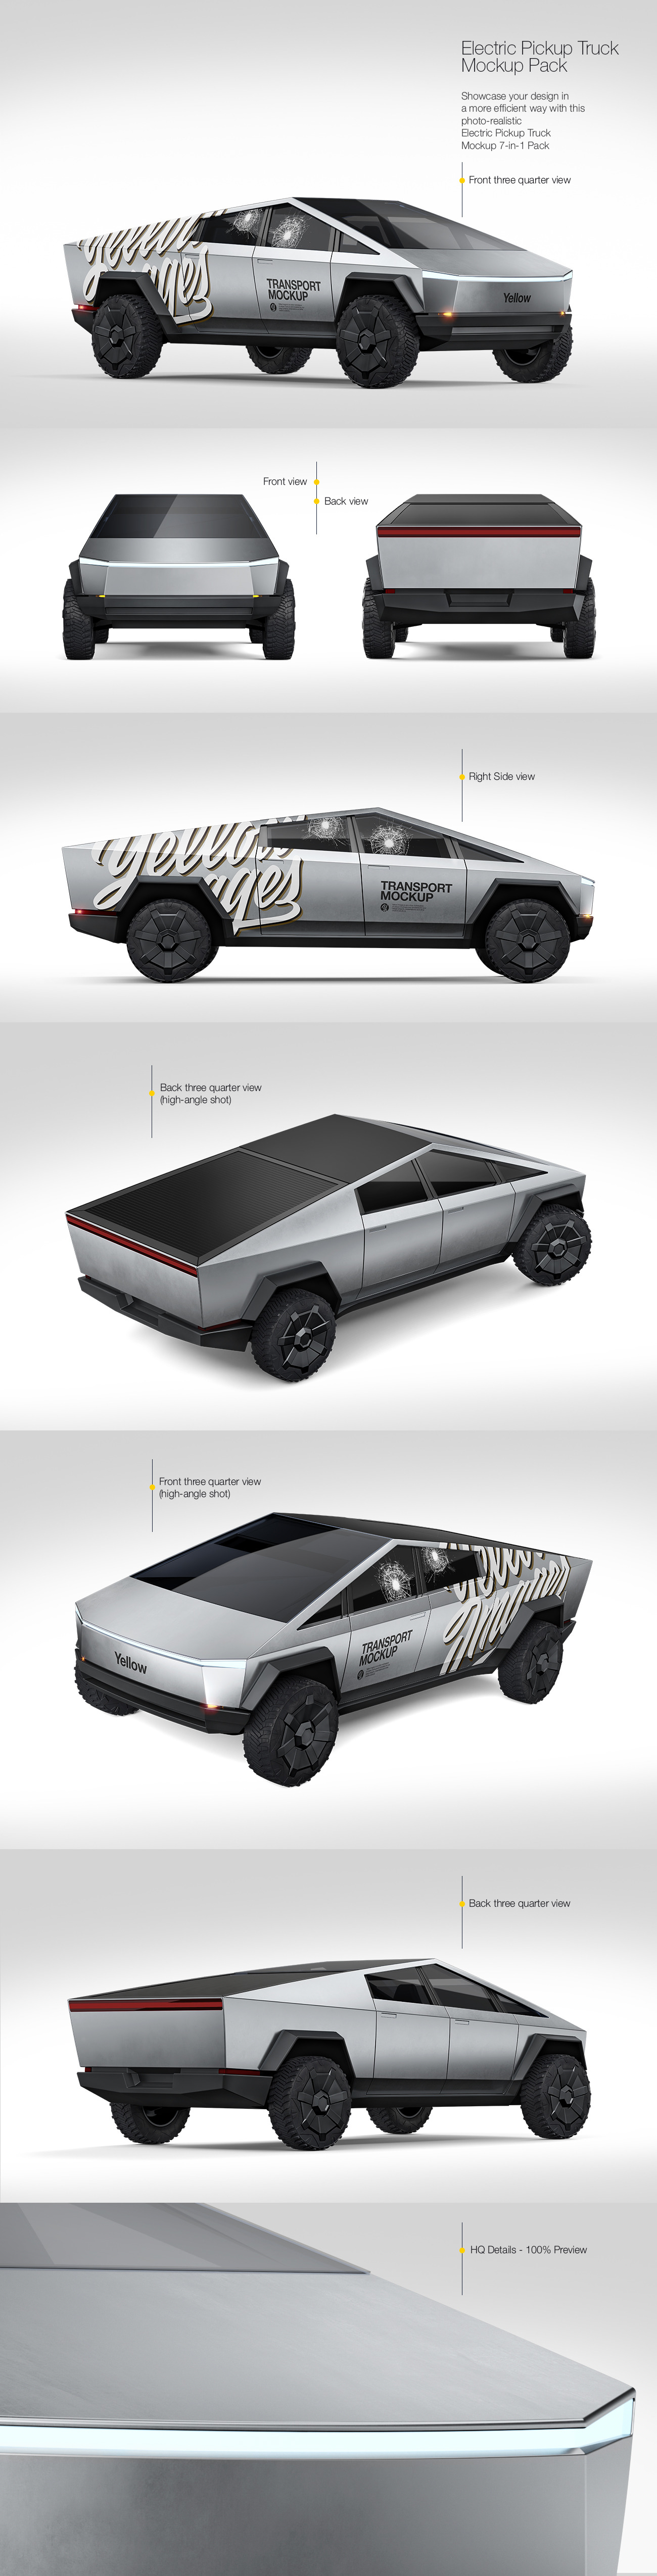 Electric Pickup Truck Mockup Pack